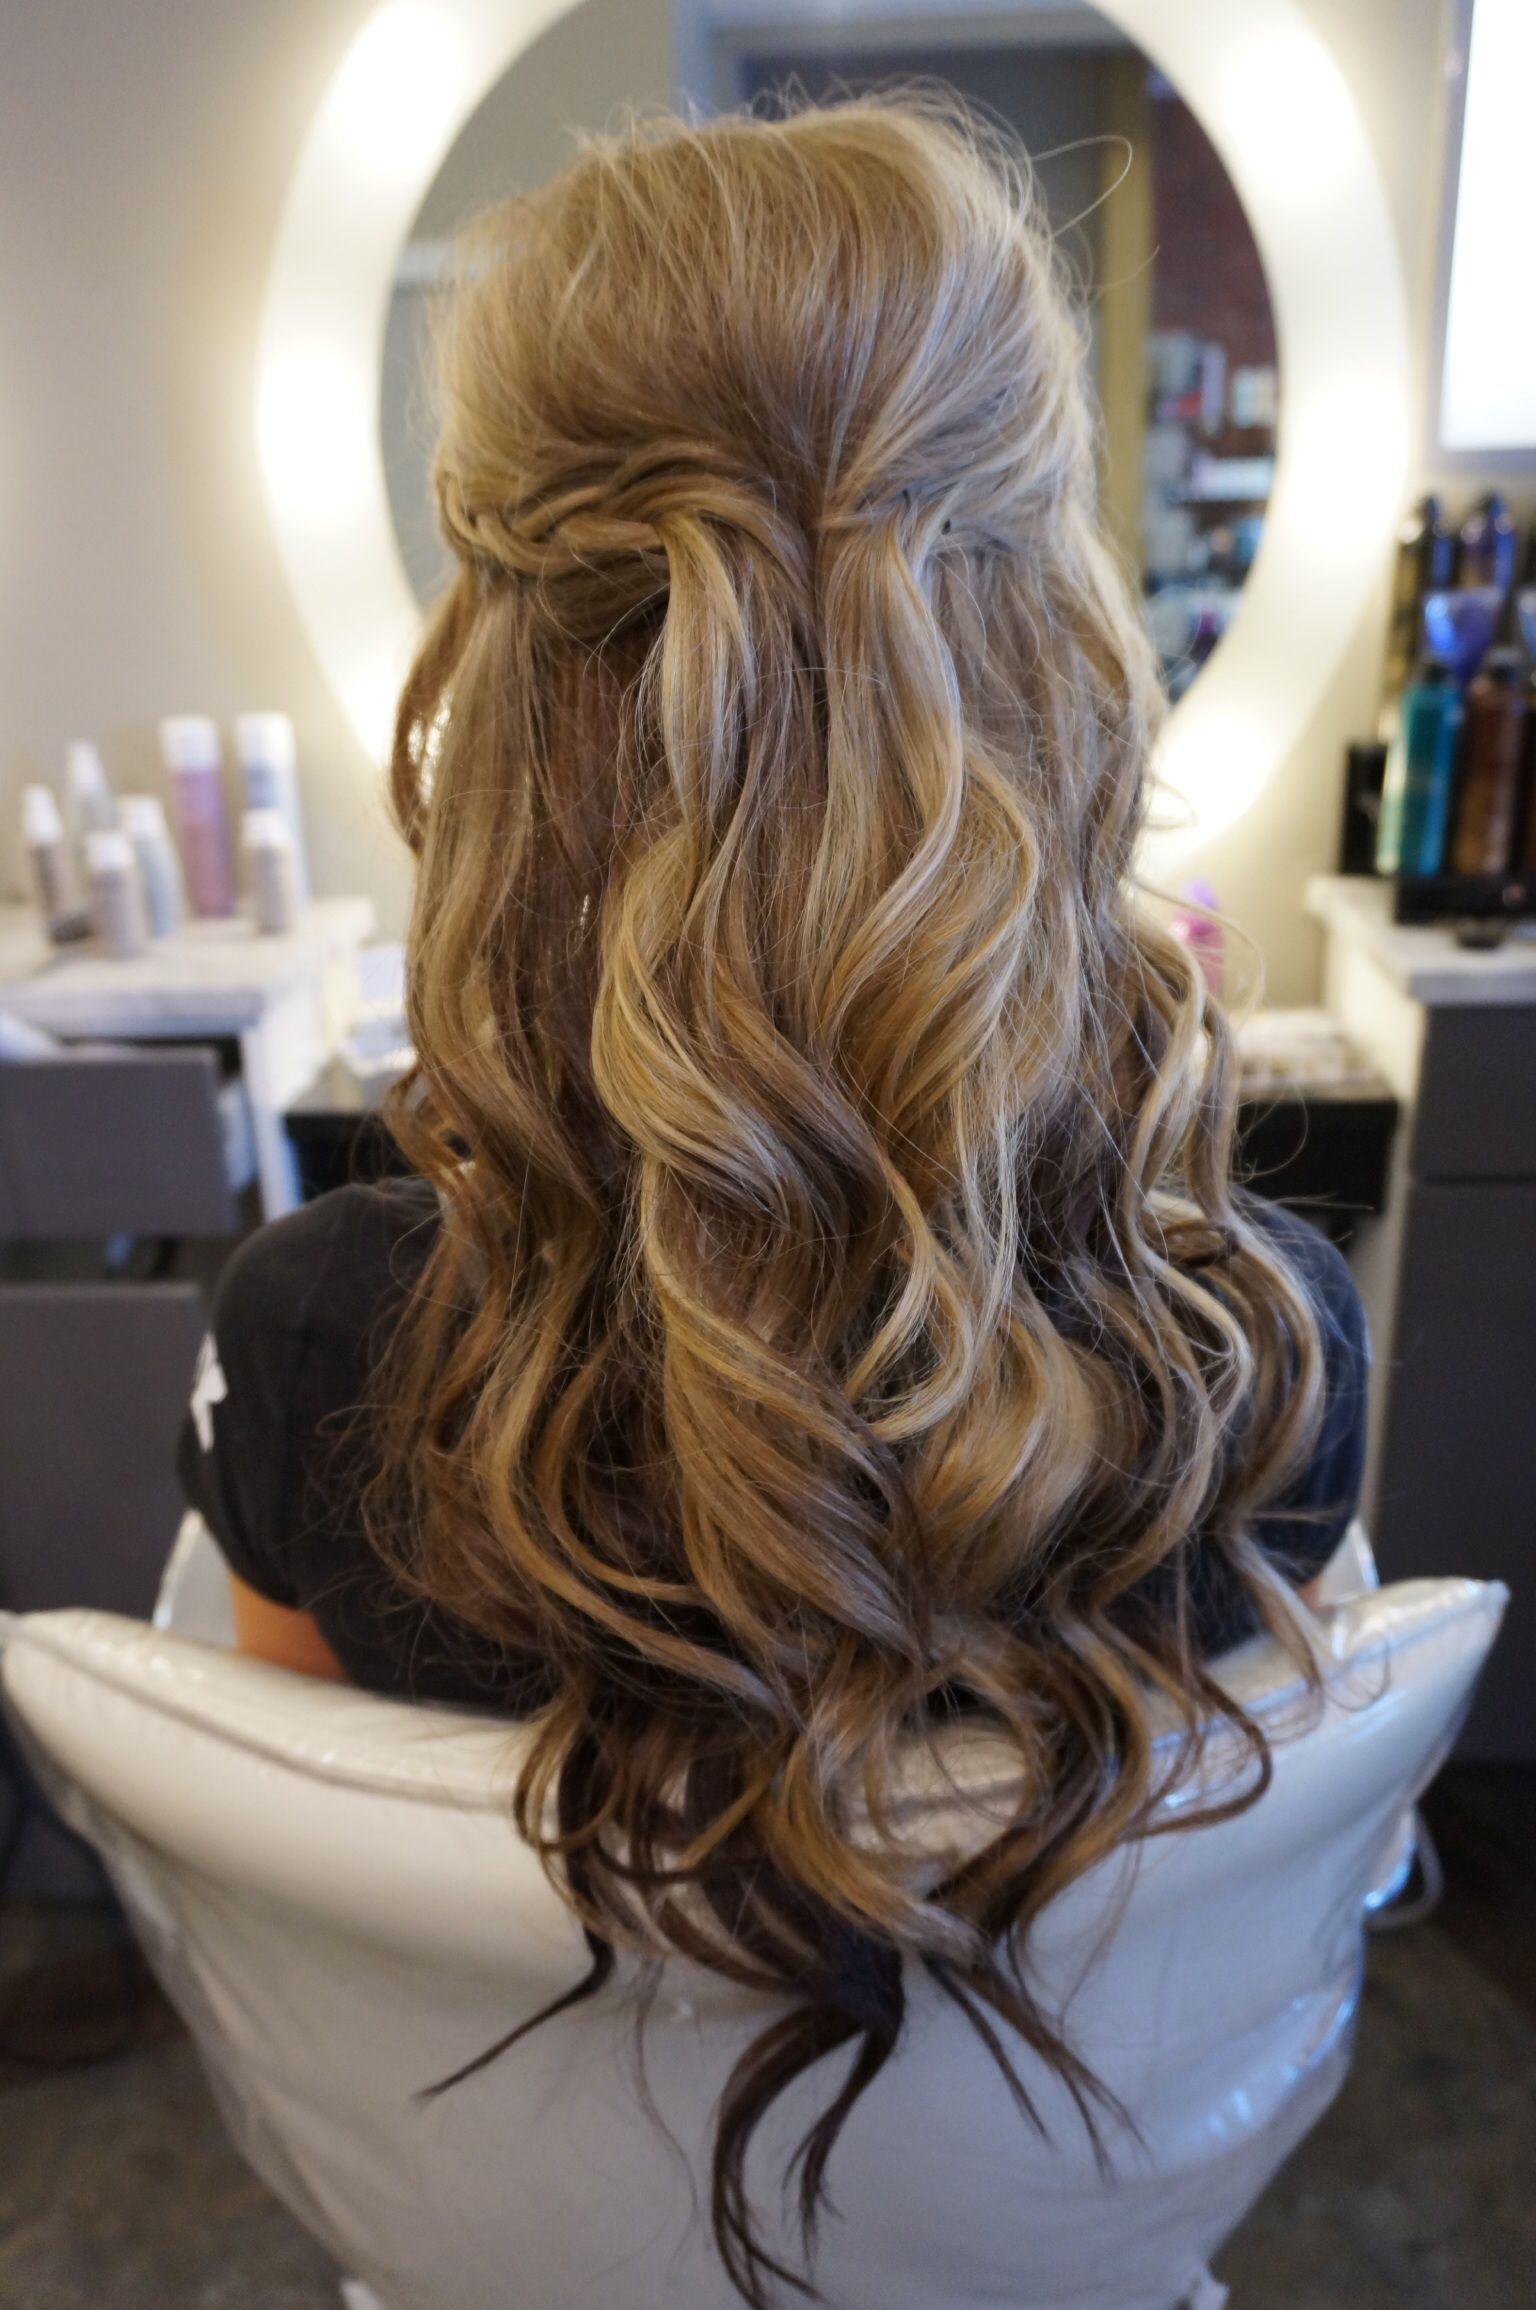 Incredible Braided Half Up Half Up Half Down And Down Hairstyles On Pinterest Hairstyles For Women Draintrainus